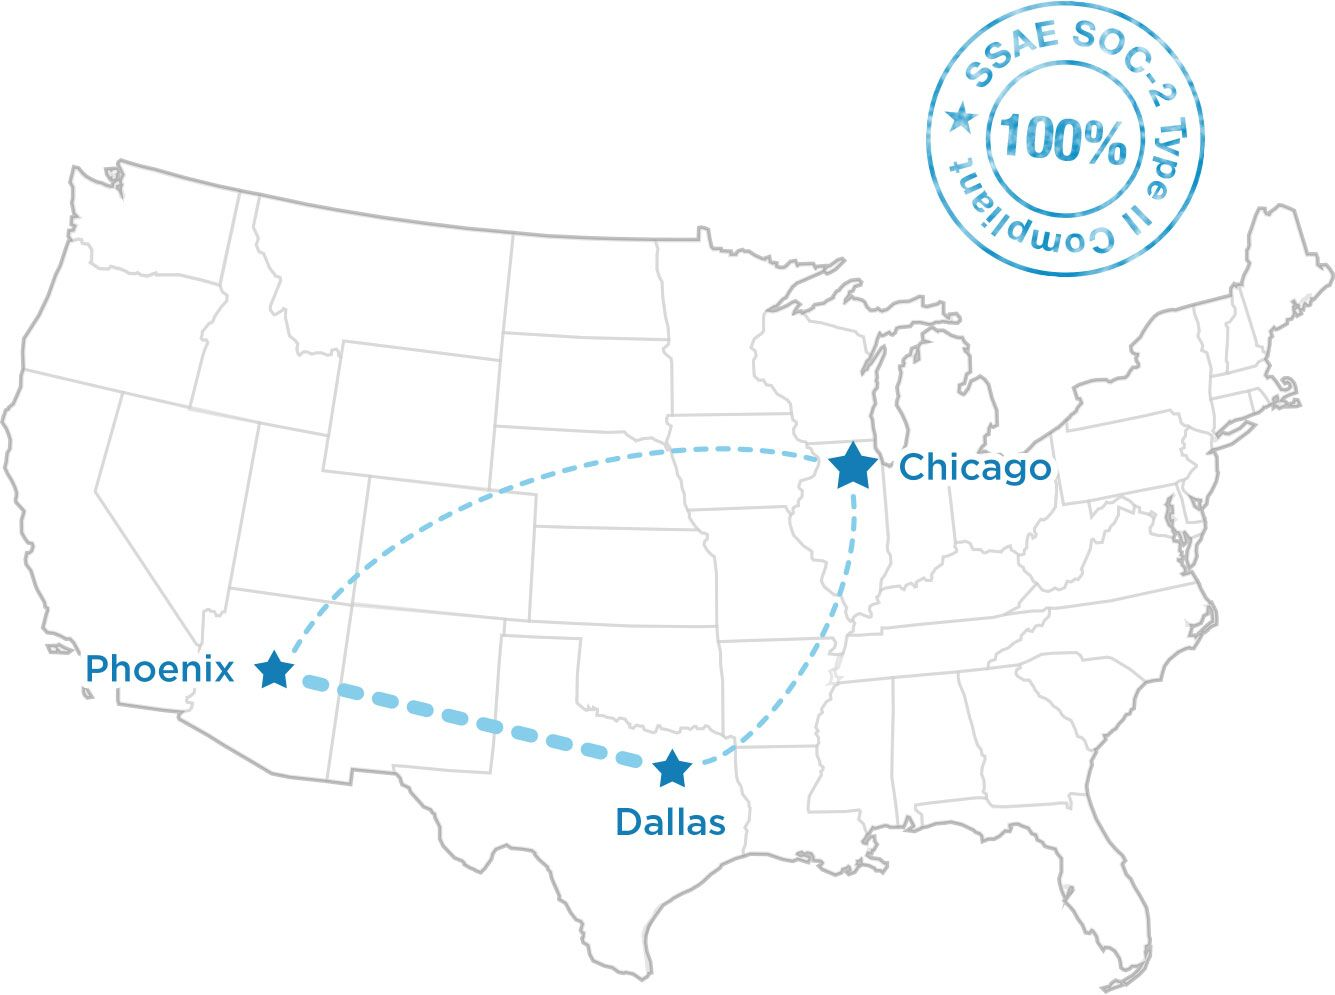 Us Map Certification.Service Level Agreement Provided By Solution Union